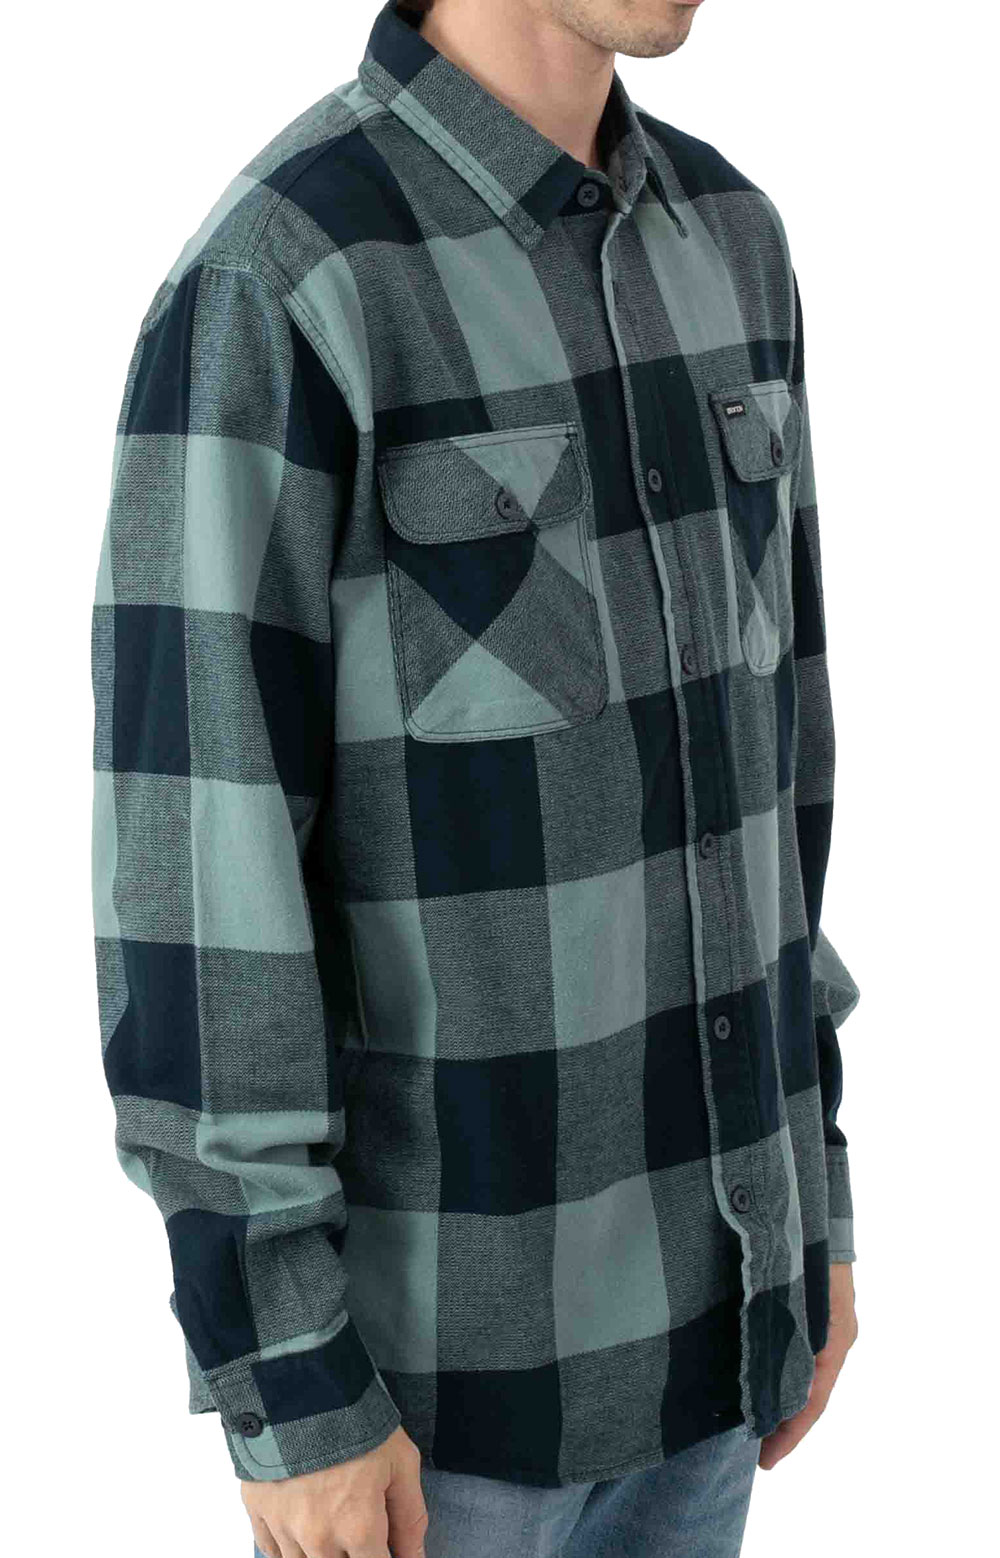 Bowery L/S Flannel - Washed Navy/Ocean  2